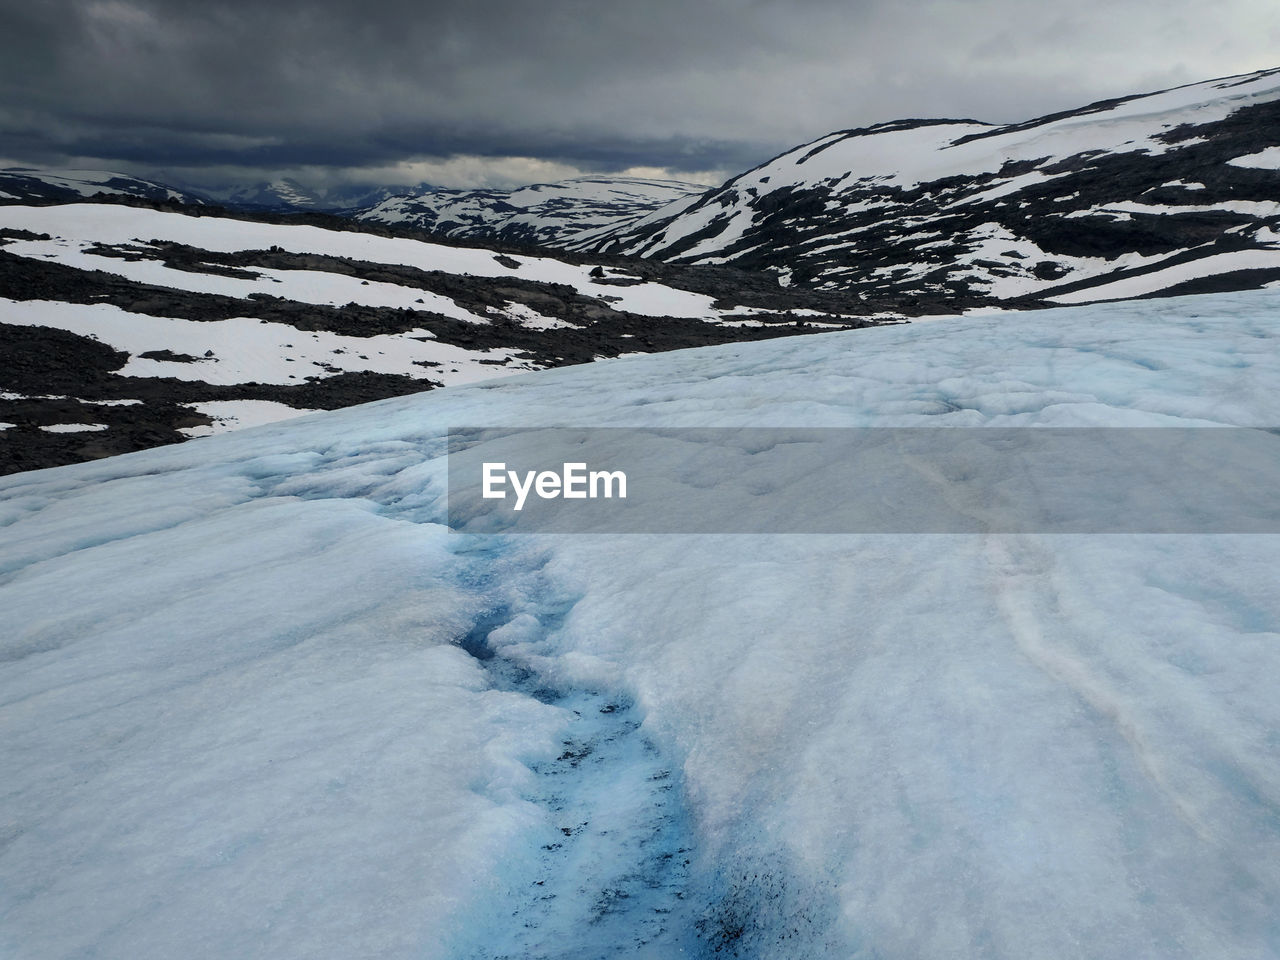 glacier in Breheimen National Park in Norway where you can experience barren mountains, streaming rivers, opalescent glaciers and rough untouched nature. Breheimen National Park Norway The Great Outdoors - 2018 EyeEm Awards Beauty In Nature Cold Temperature Environment Frozen Glacier Ice Landscape Nature No People Non-urban Scene Norway Nature Outdoor Photography Outdoors Remote Snow Tranquility White Color Wilderness